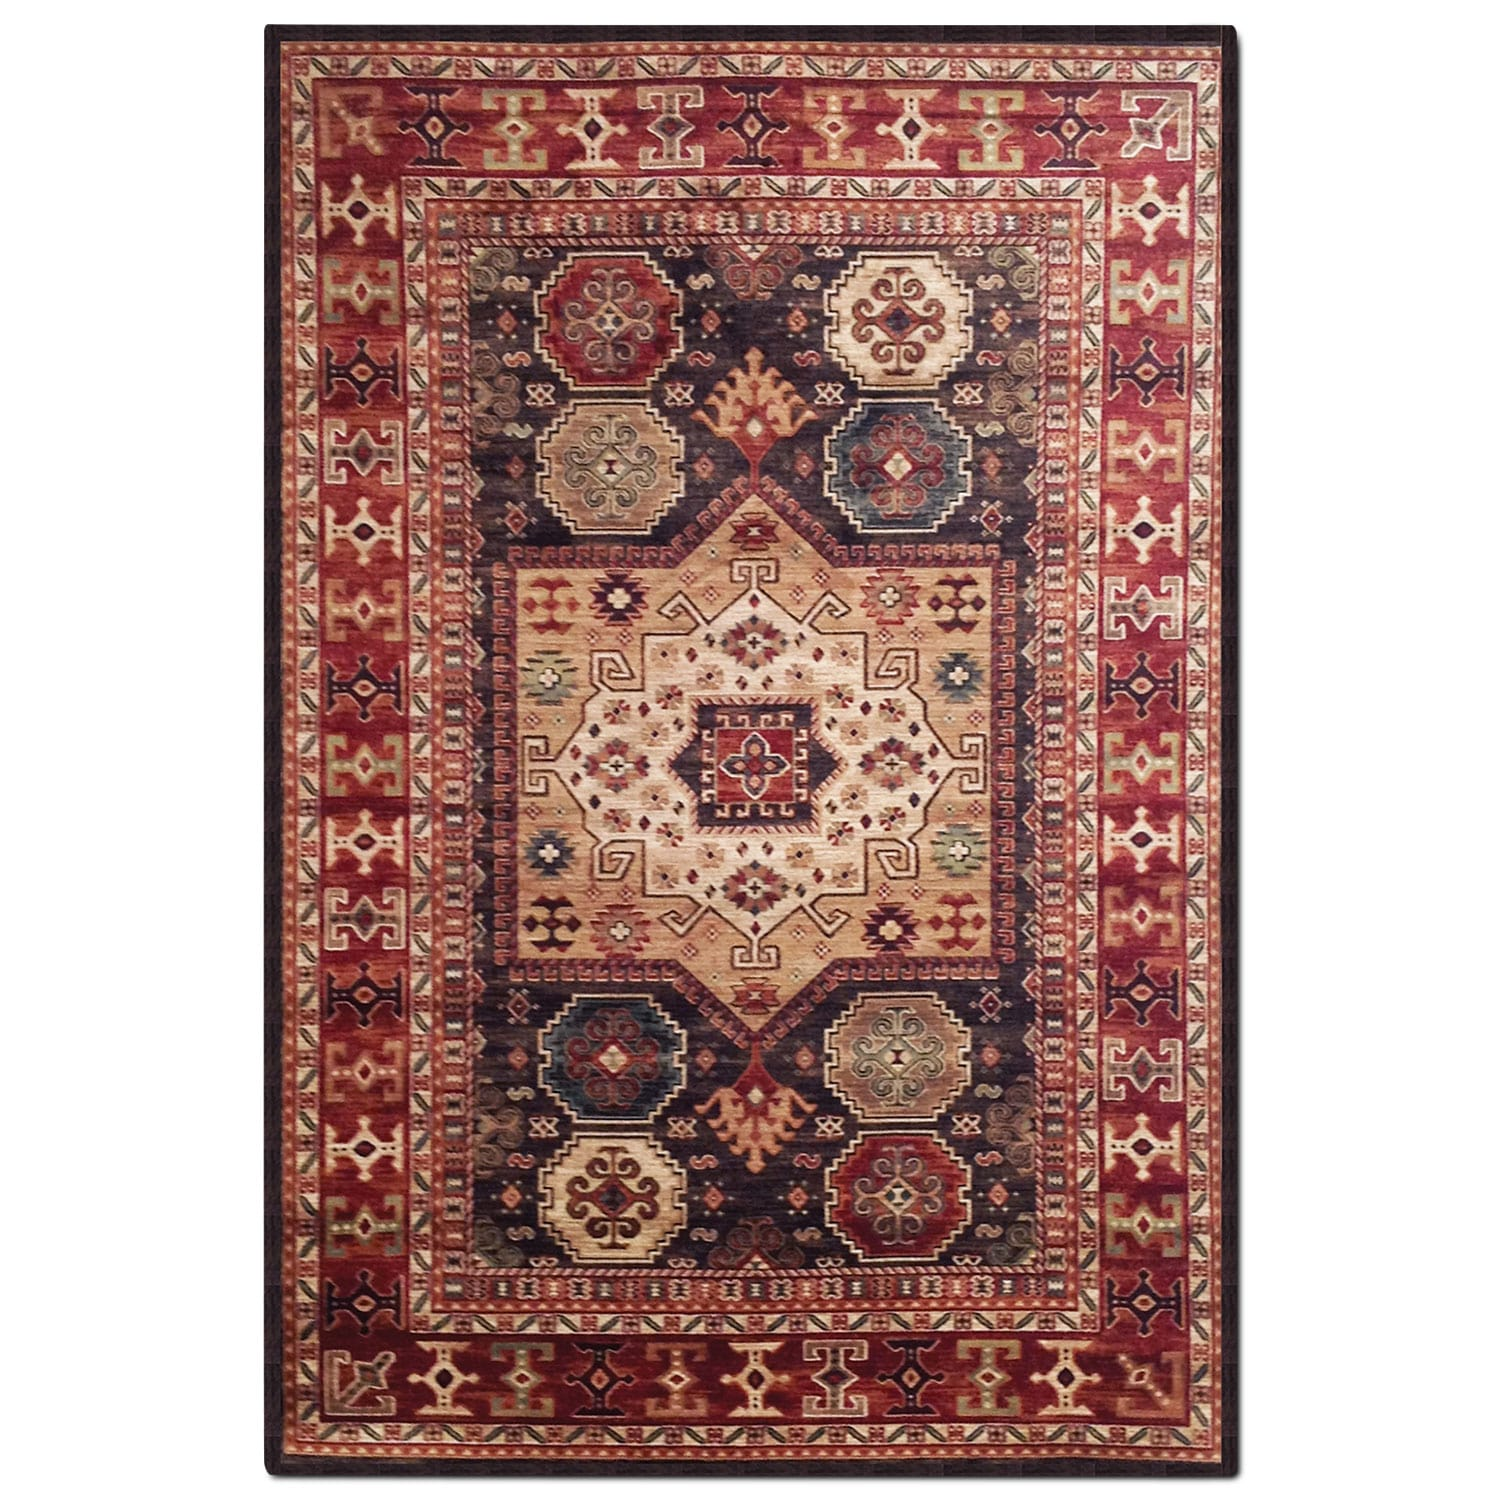 Sonoma 5' x 8' Area Rug - Chocolate and Red